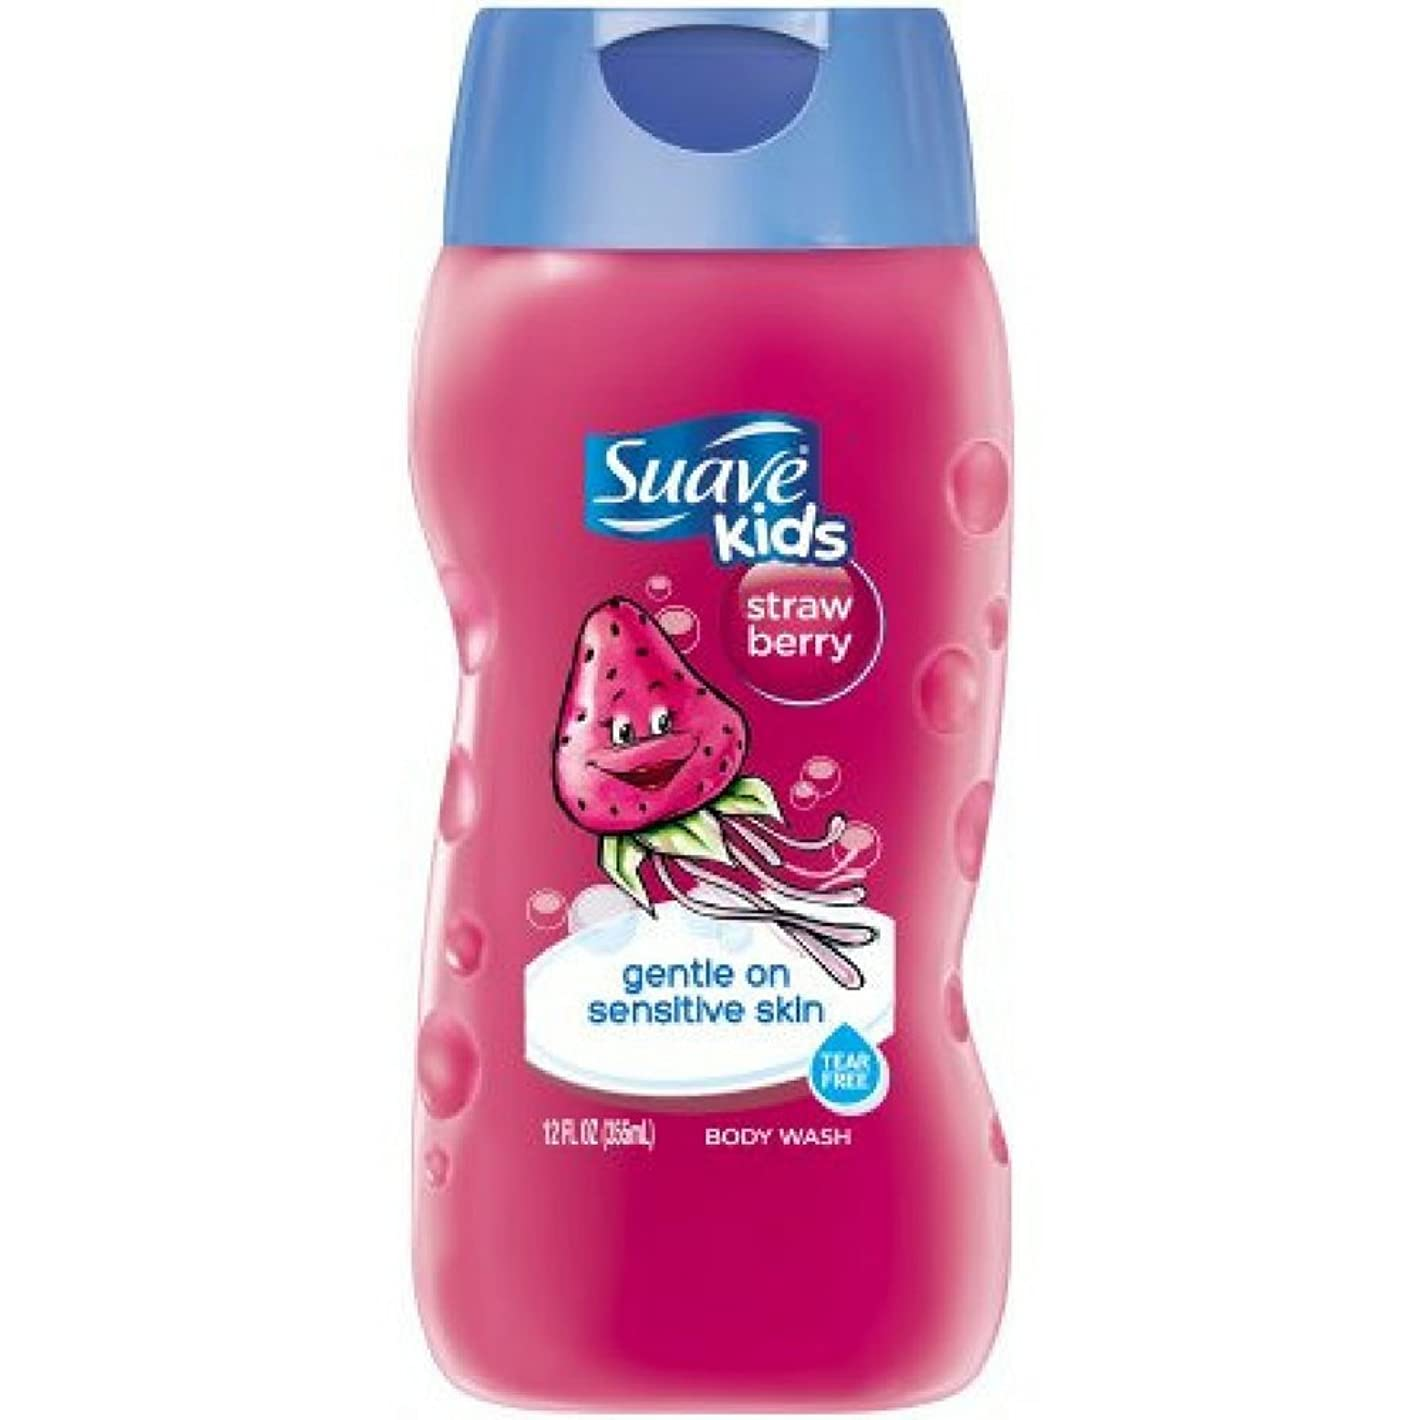 蛇行ジェスチャーかび臭いSuave Kids Kids Body Wash - Strawberry - 12 oz - 2 pk by Suave [並行輸入品]